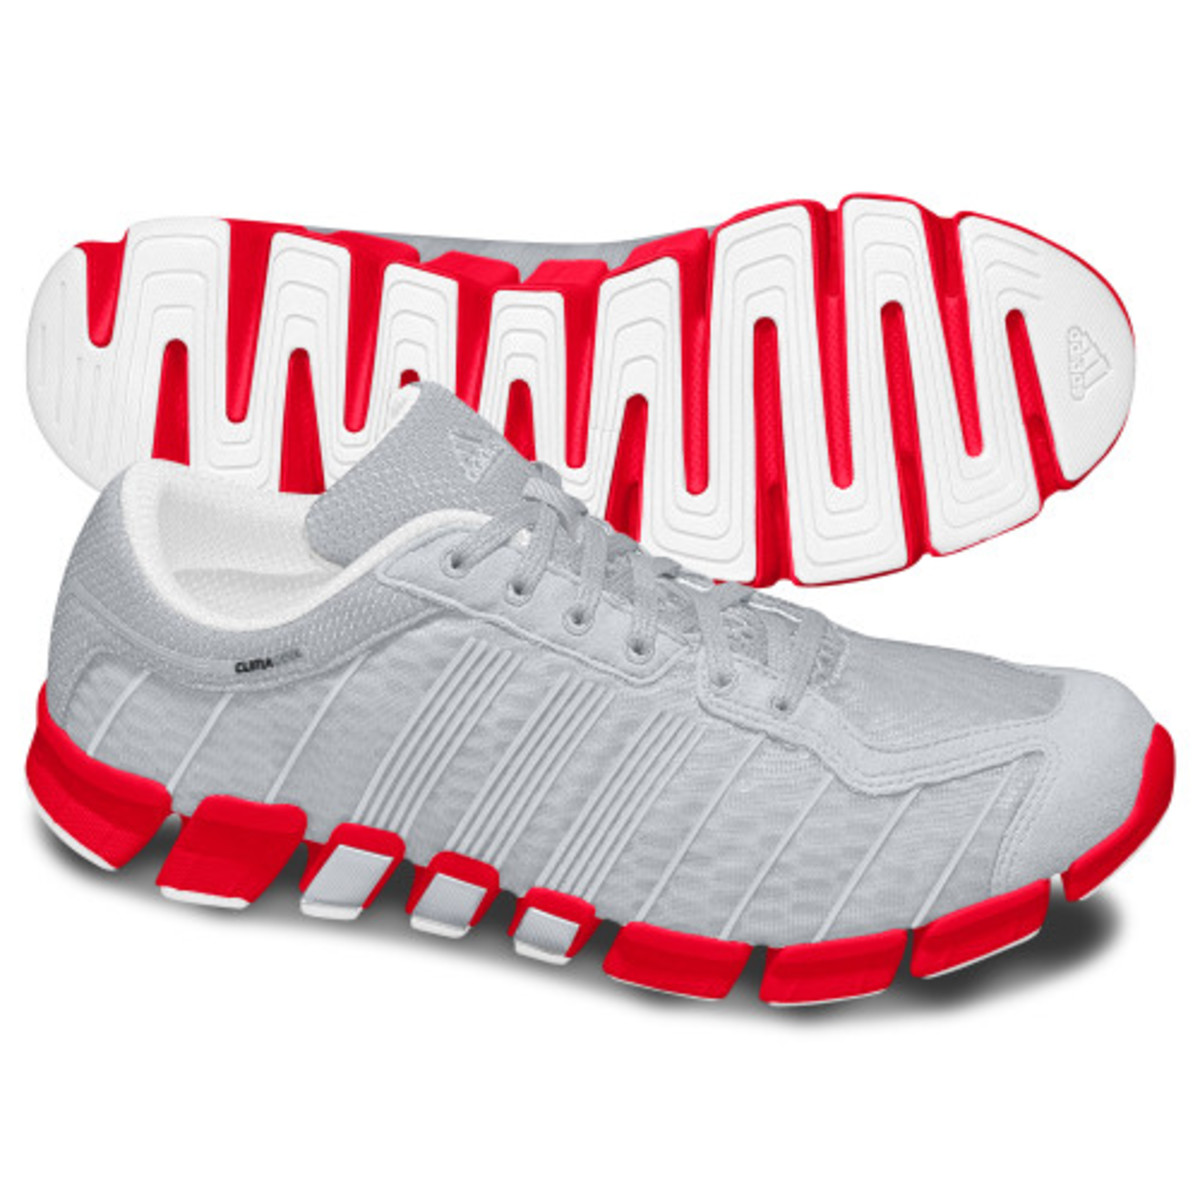 climacool-ride-silver-red